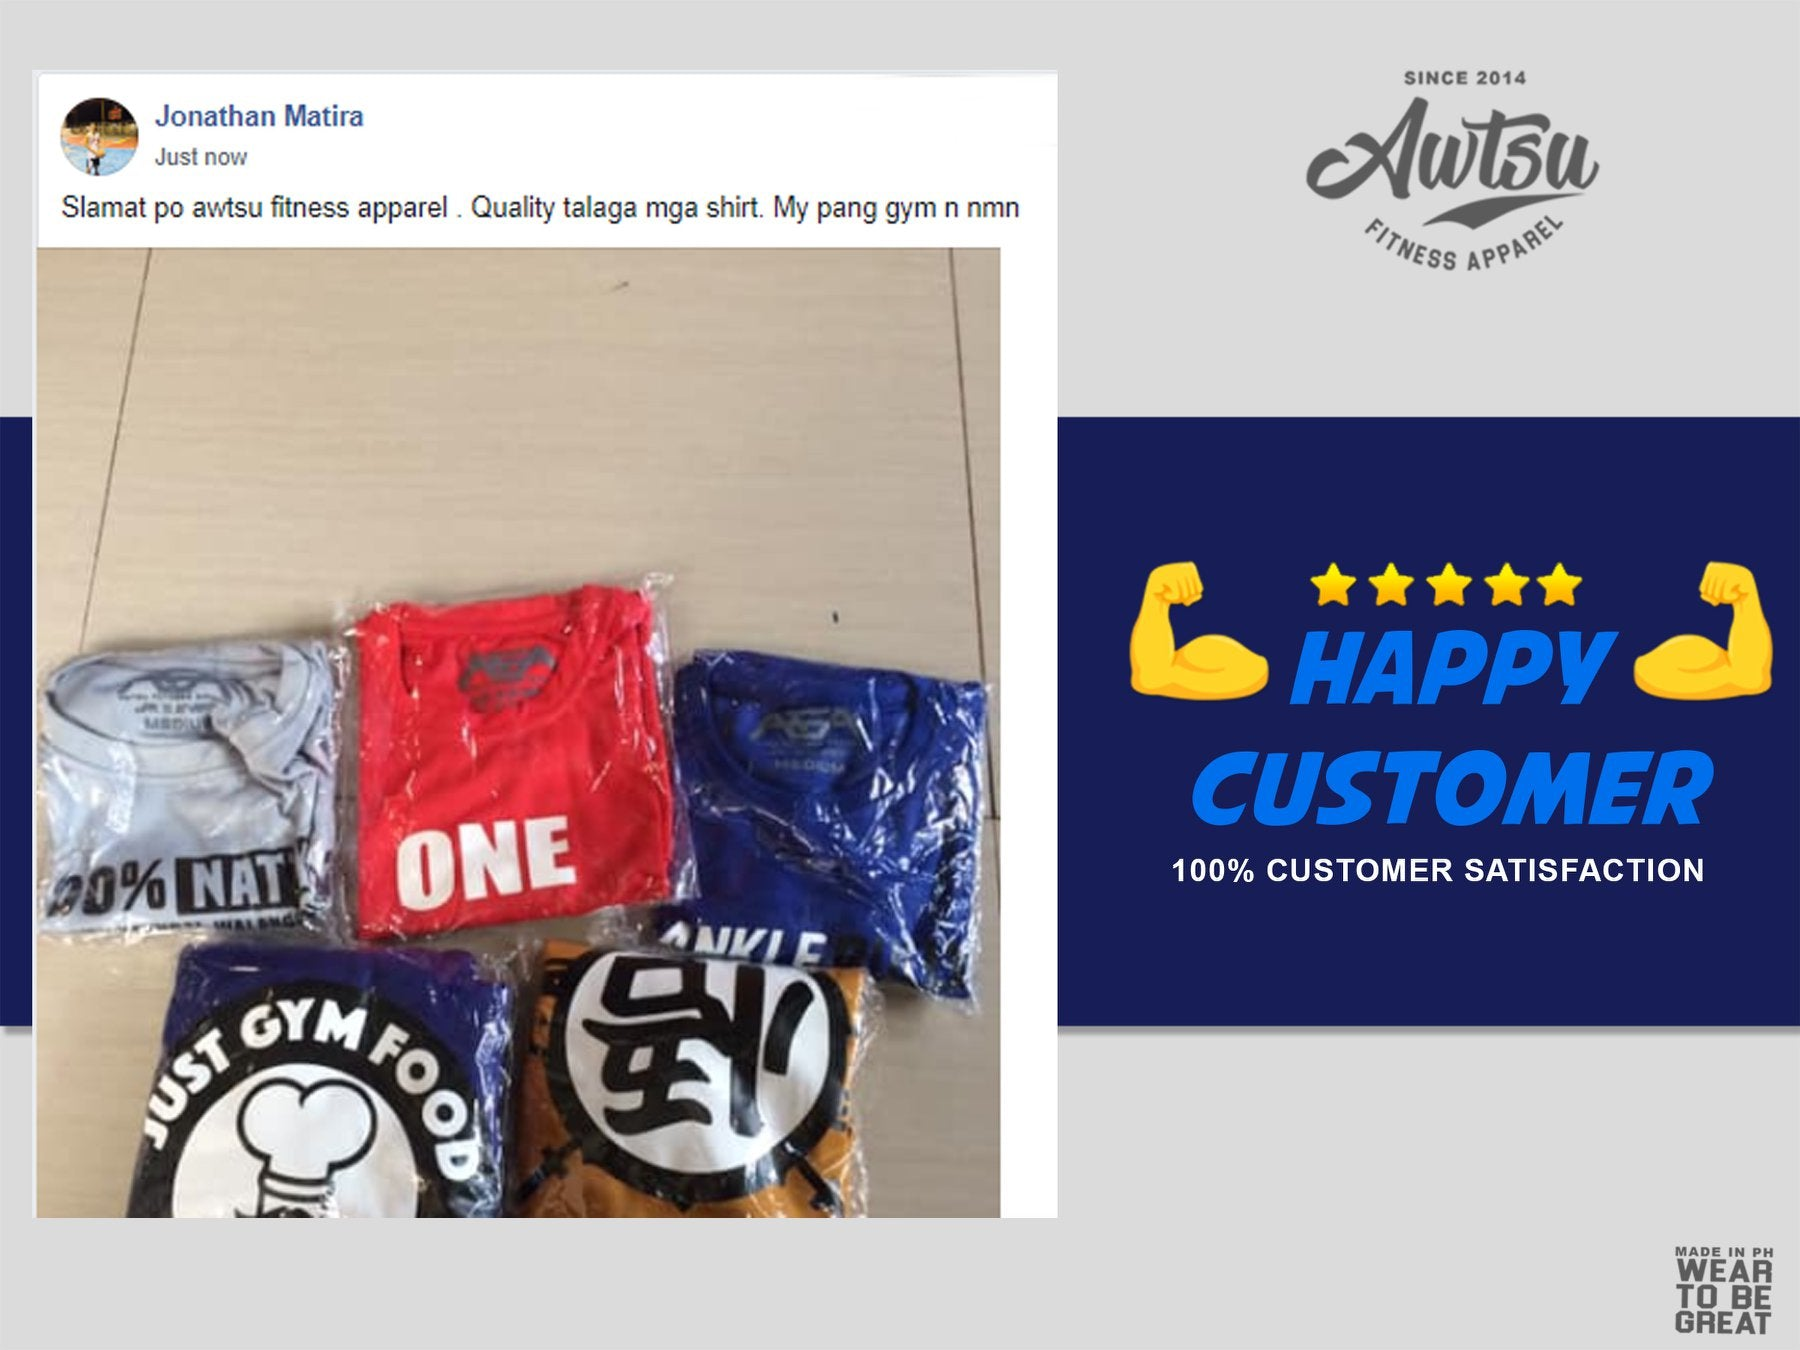 Jonathan Matira 5 Star Review of Awtsu Fitness Apparel